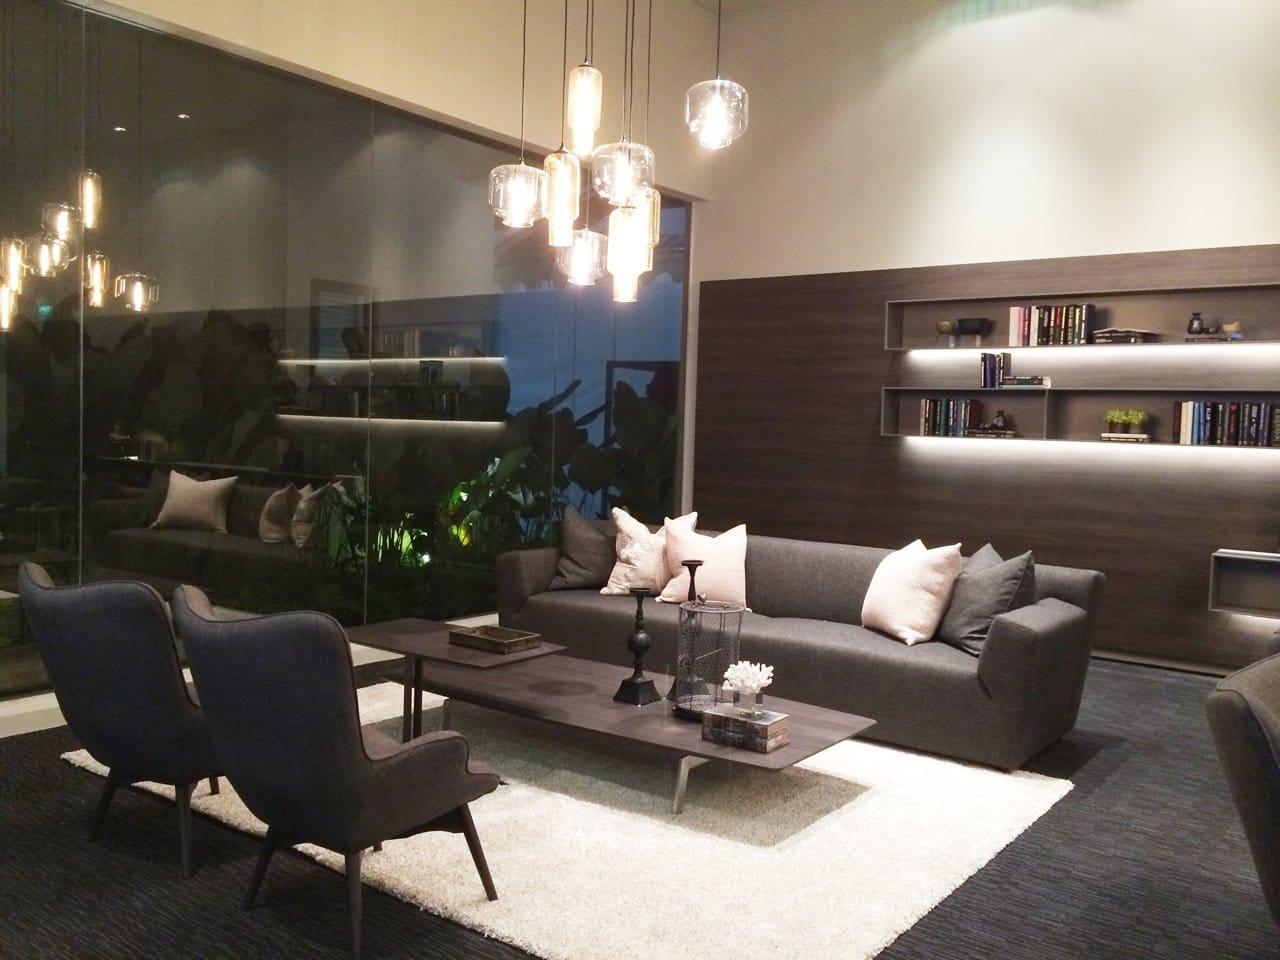 Bellewaters Sales Gallery - Anchorvale | Products seen: [Light Hang NM Series - Pharos &amp; Oculo &amp; Brandy Lounge Set]<br />